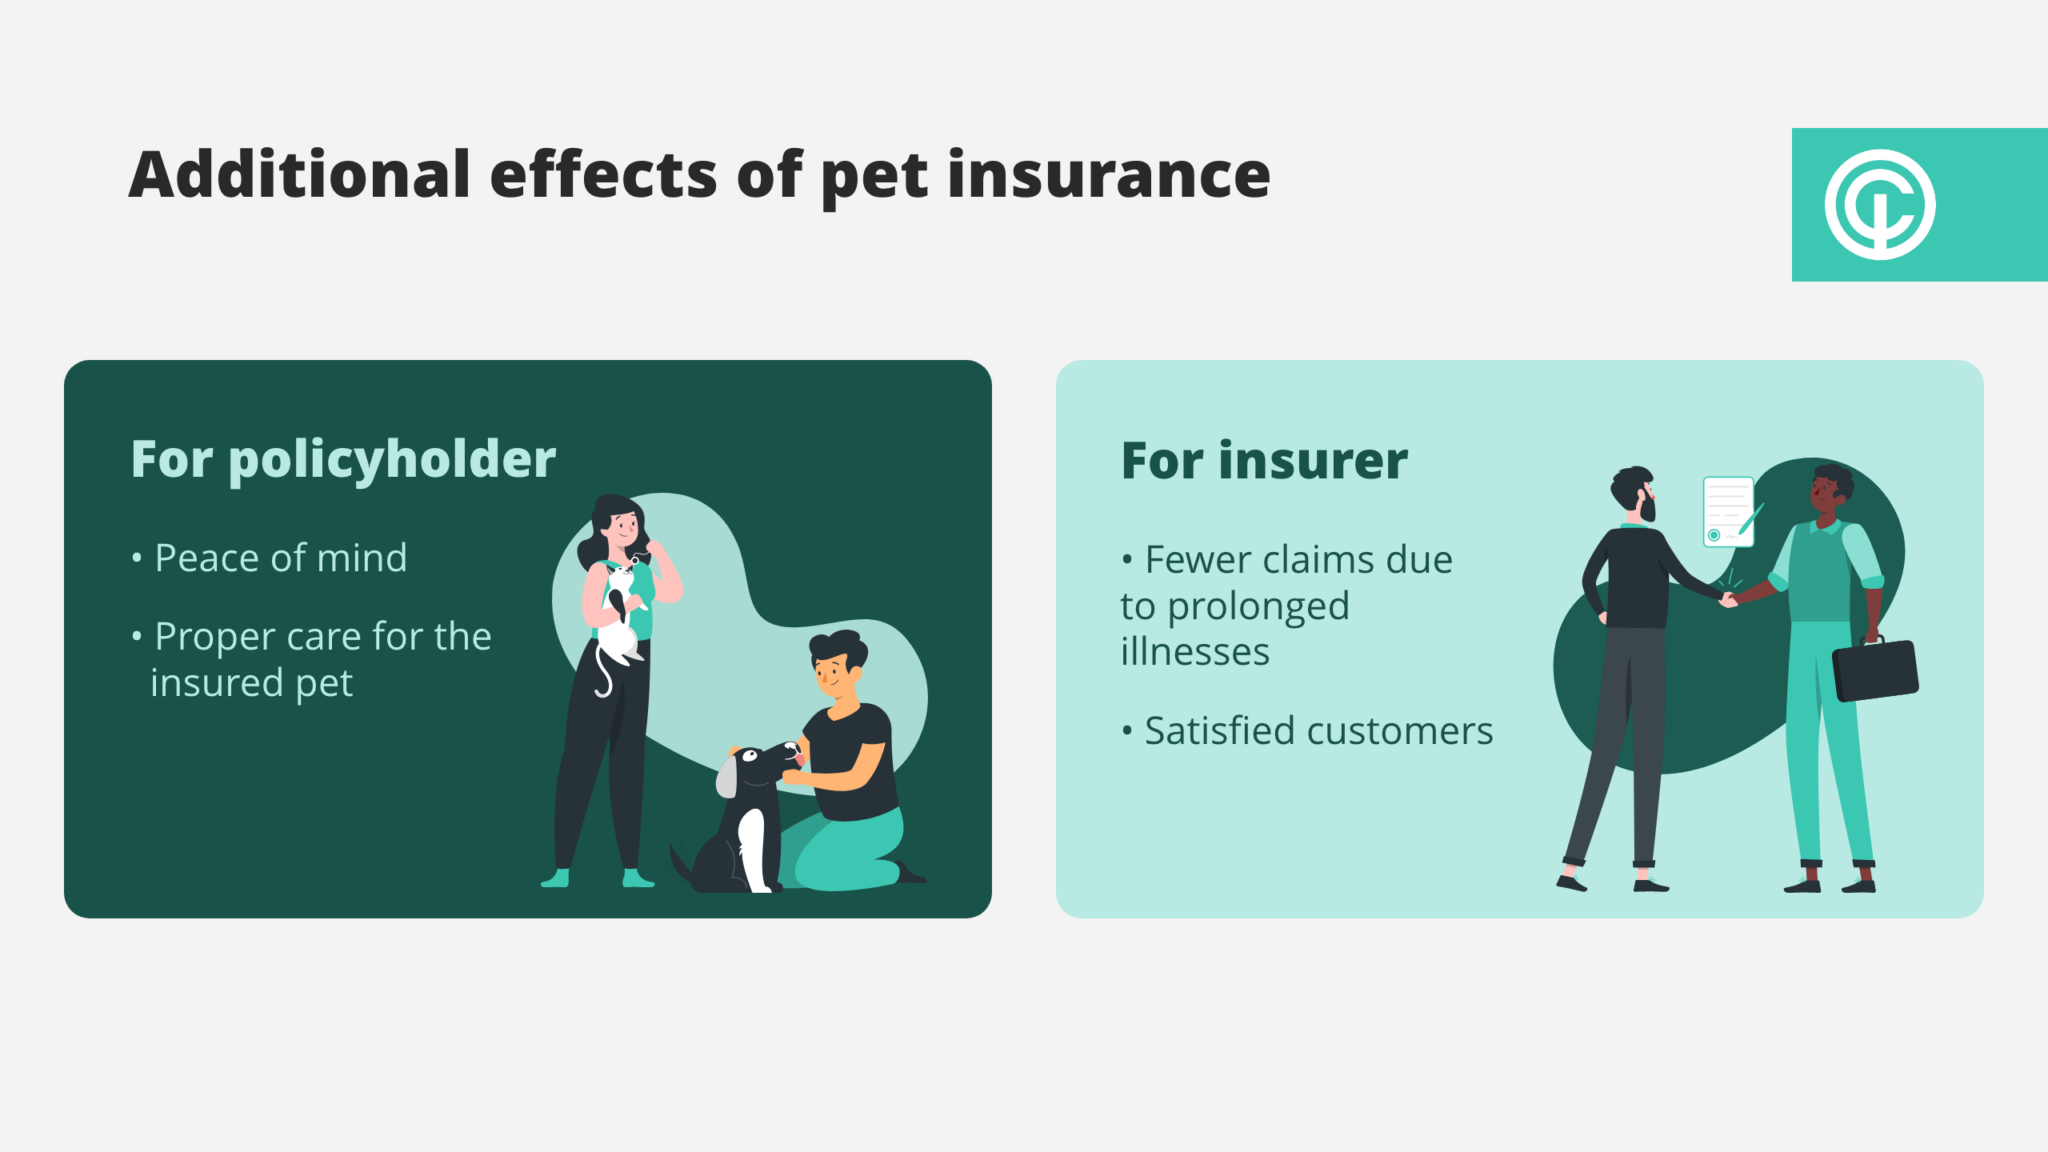 Additional effects of pet insurance